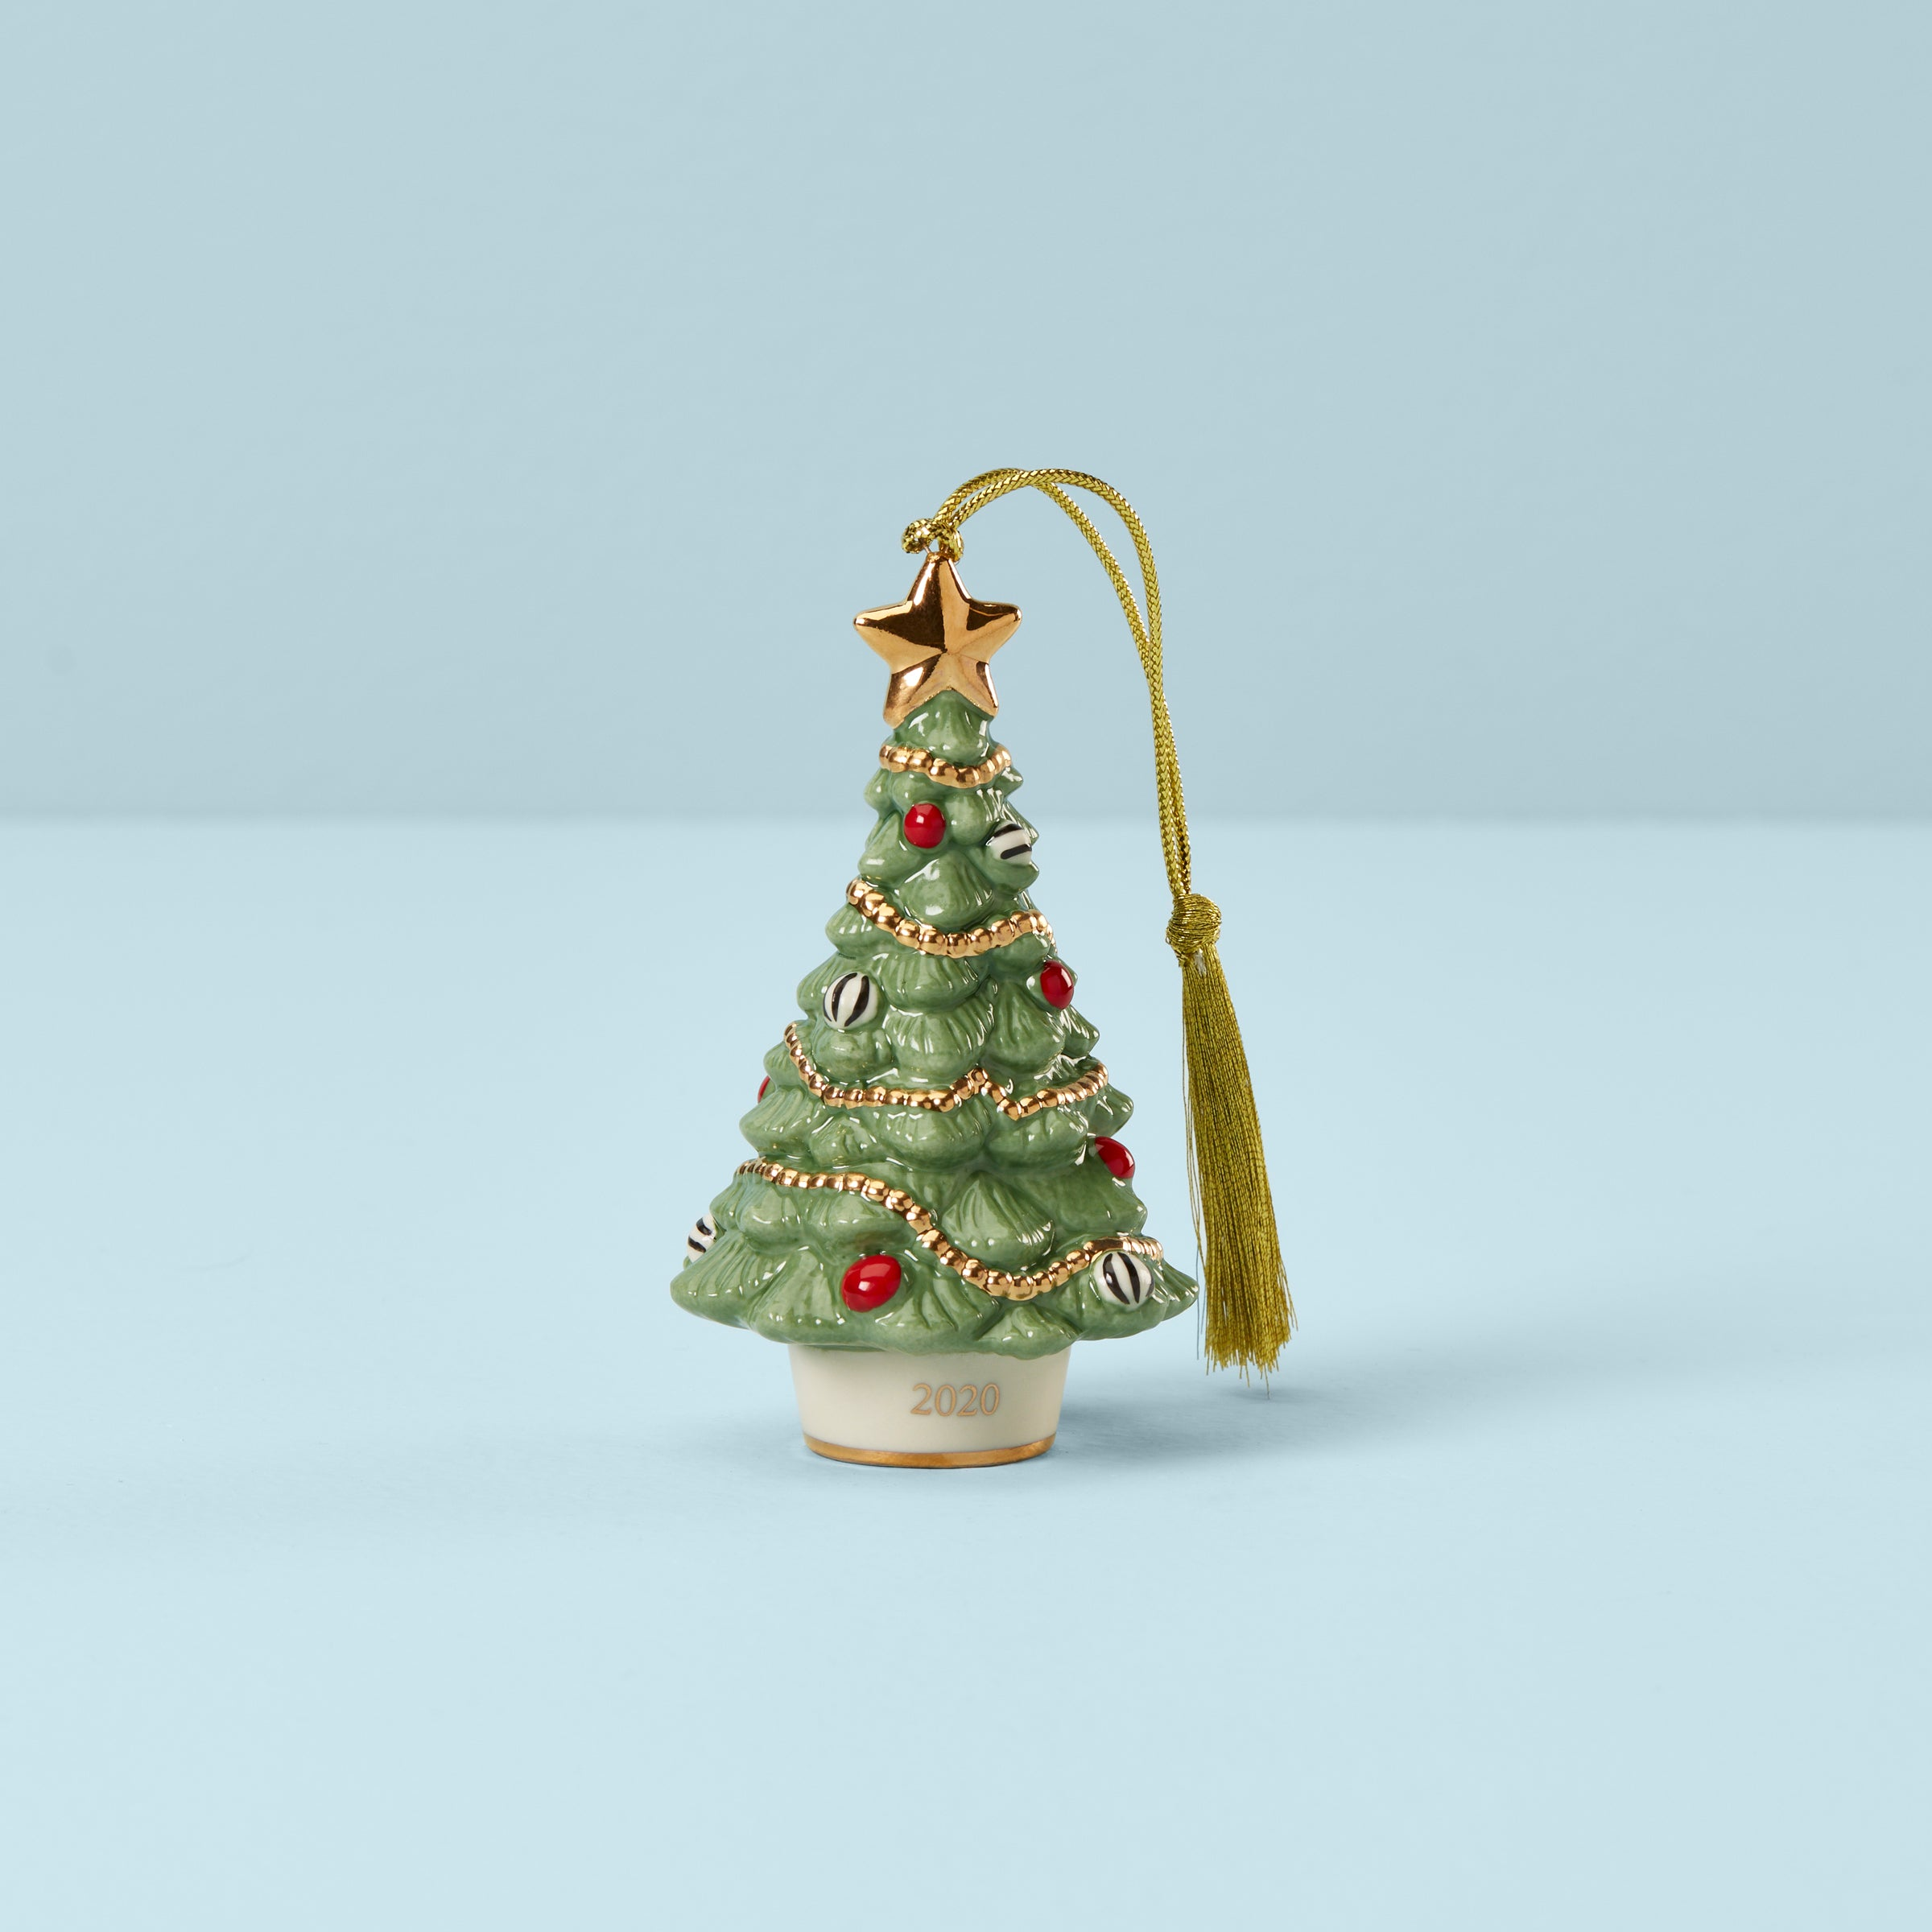 2020 Christmas Bell Ornament 2020 Festive Christmas Tree Ornament – Lenox Corporation